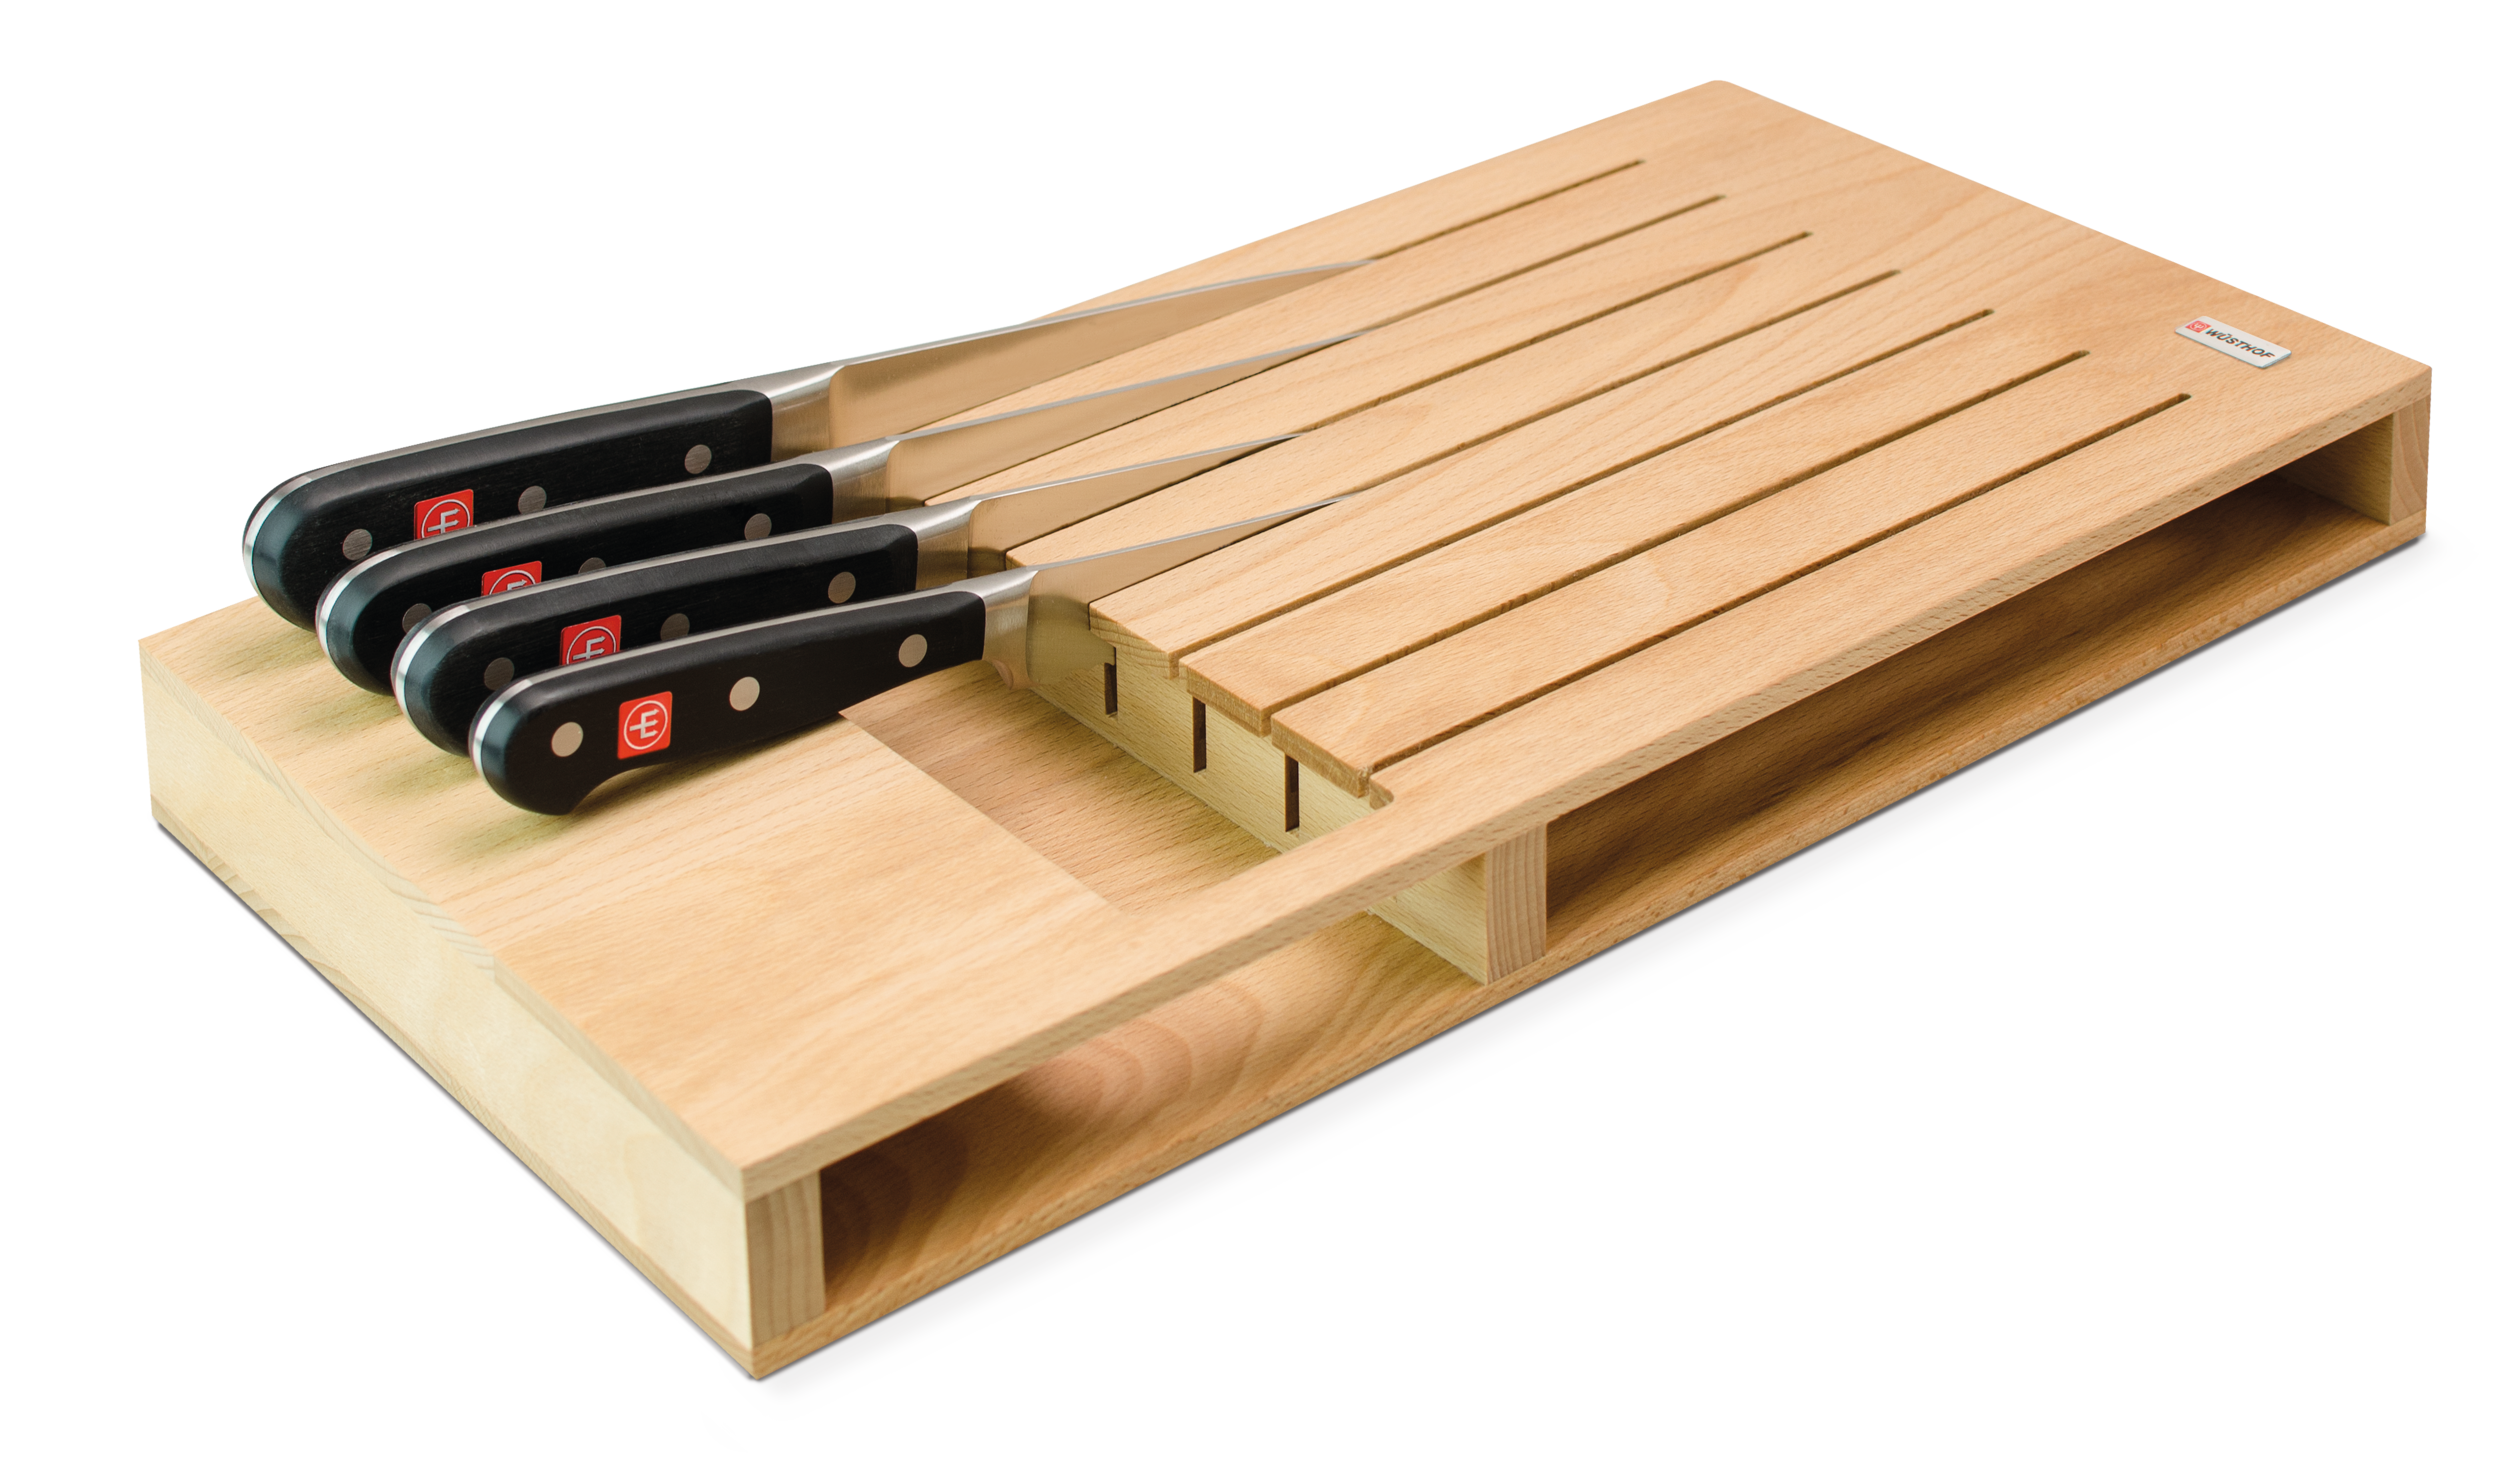 In-drawer knife organiser